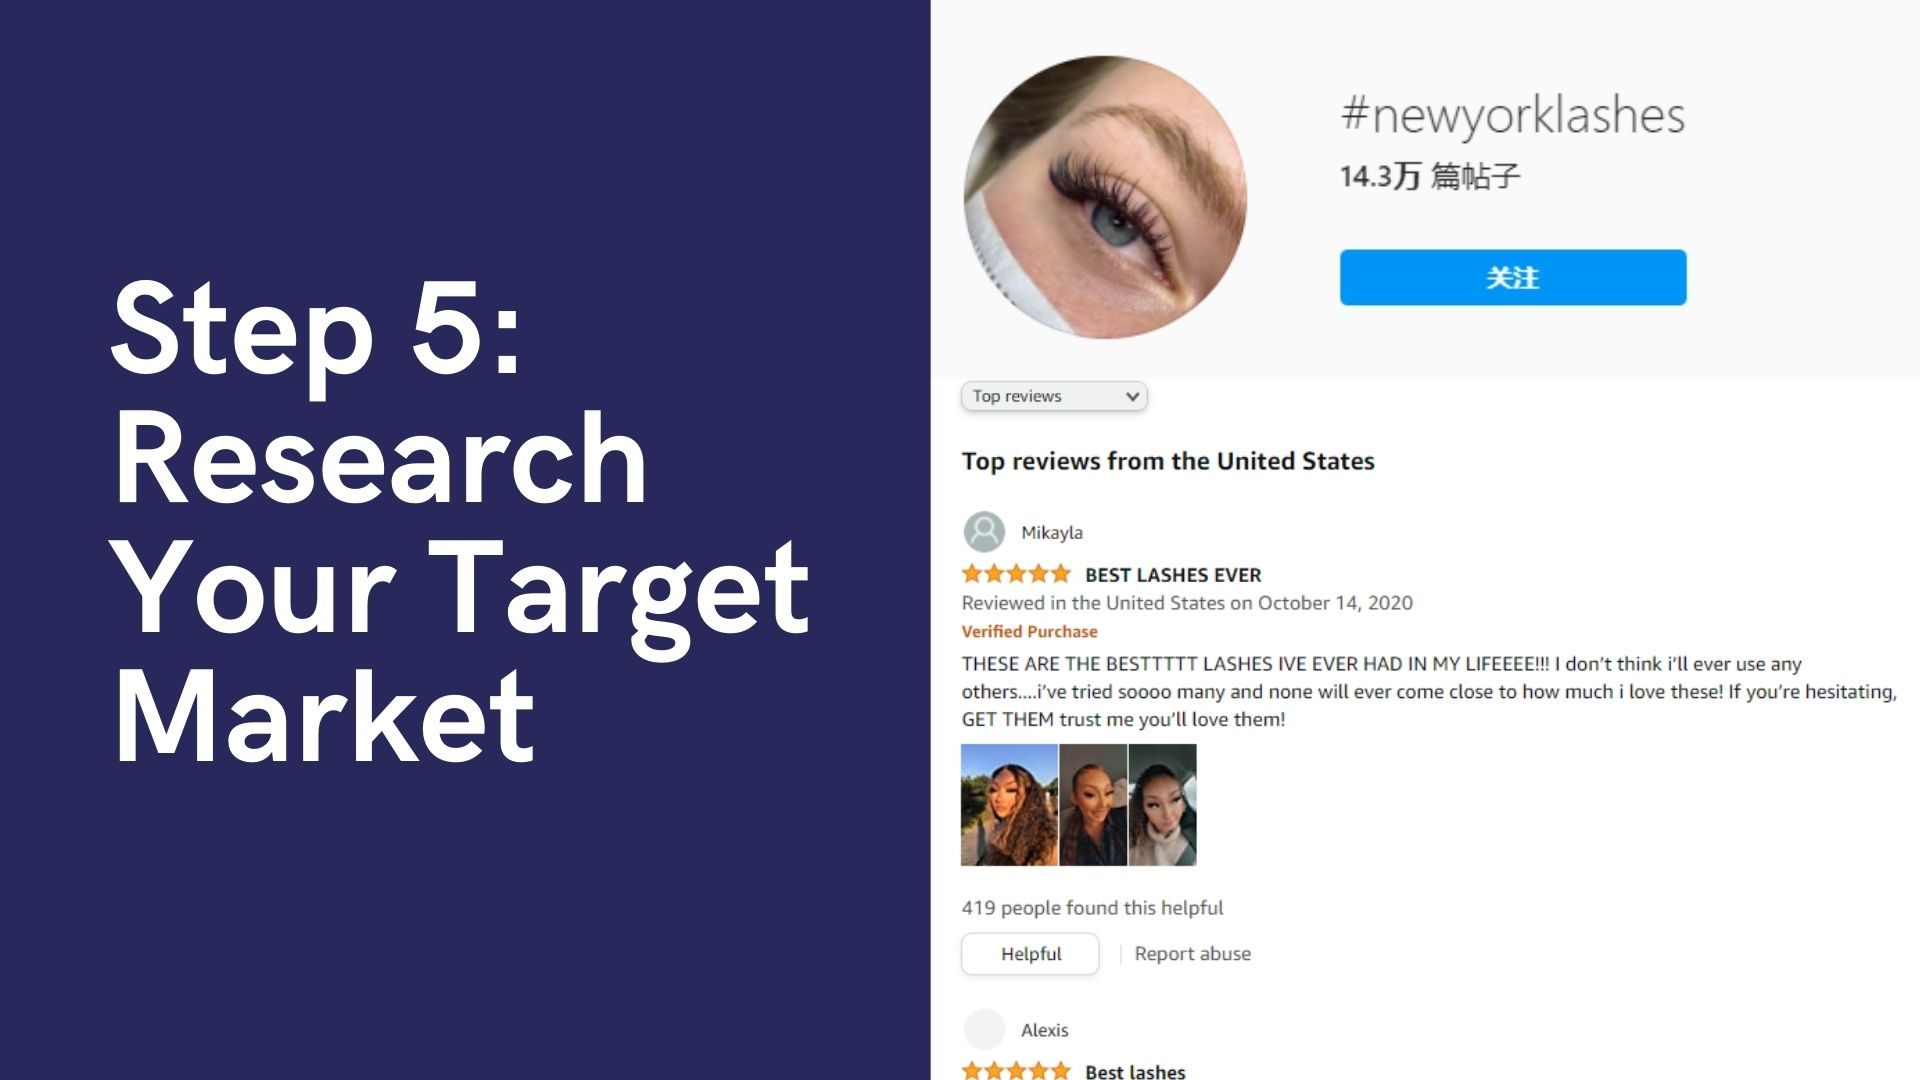 Step 5 Research Your Target Market